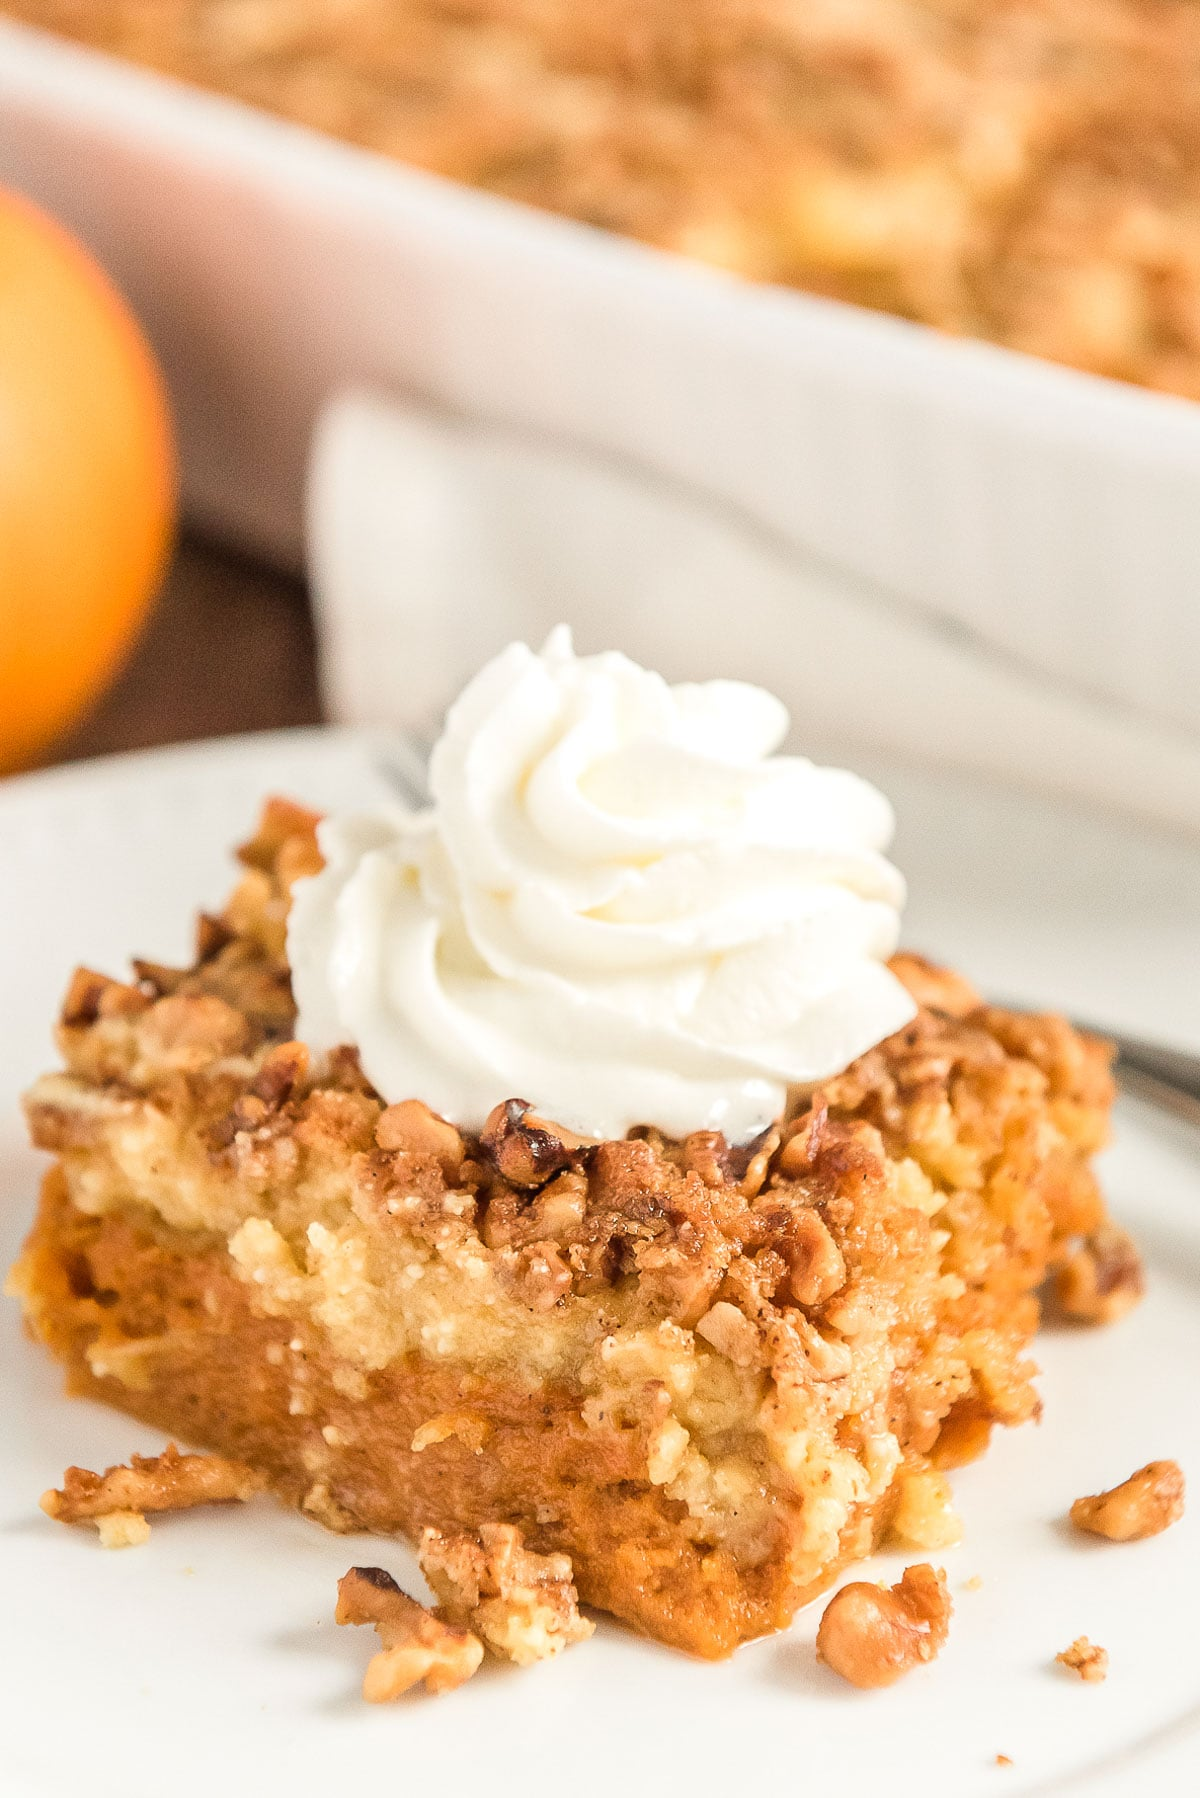 Pumpkin Dump Cake | Check out these 15 Easy Pumpkin Desserts for Fall and Thanksgiving! From quick and easy desserts with simple ingredients like pumpkin pie and pumpkin cream cheese bread, to pumpkin cookies, cheesecake, and cake, you'll love this list of the best pumpkin desserts ever!  #pumpkindesserts #pumpkinrecipes #falldesserts #thanksgiving